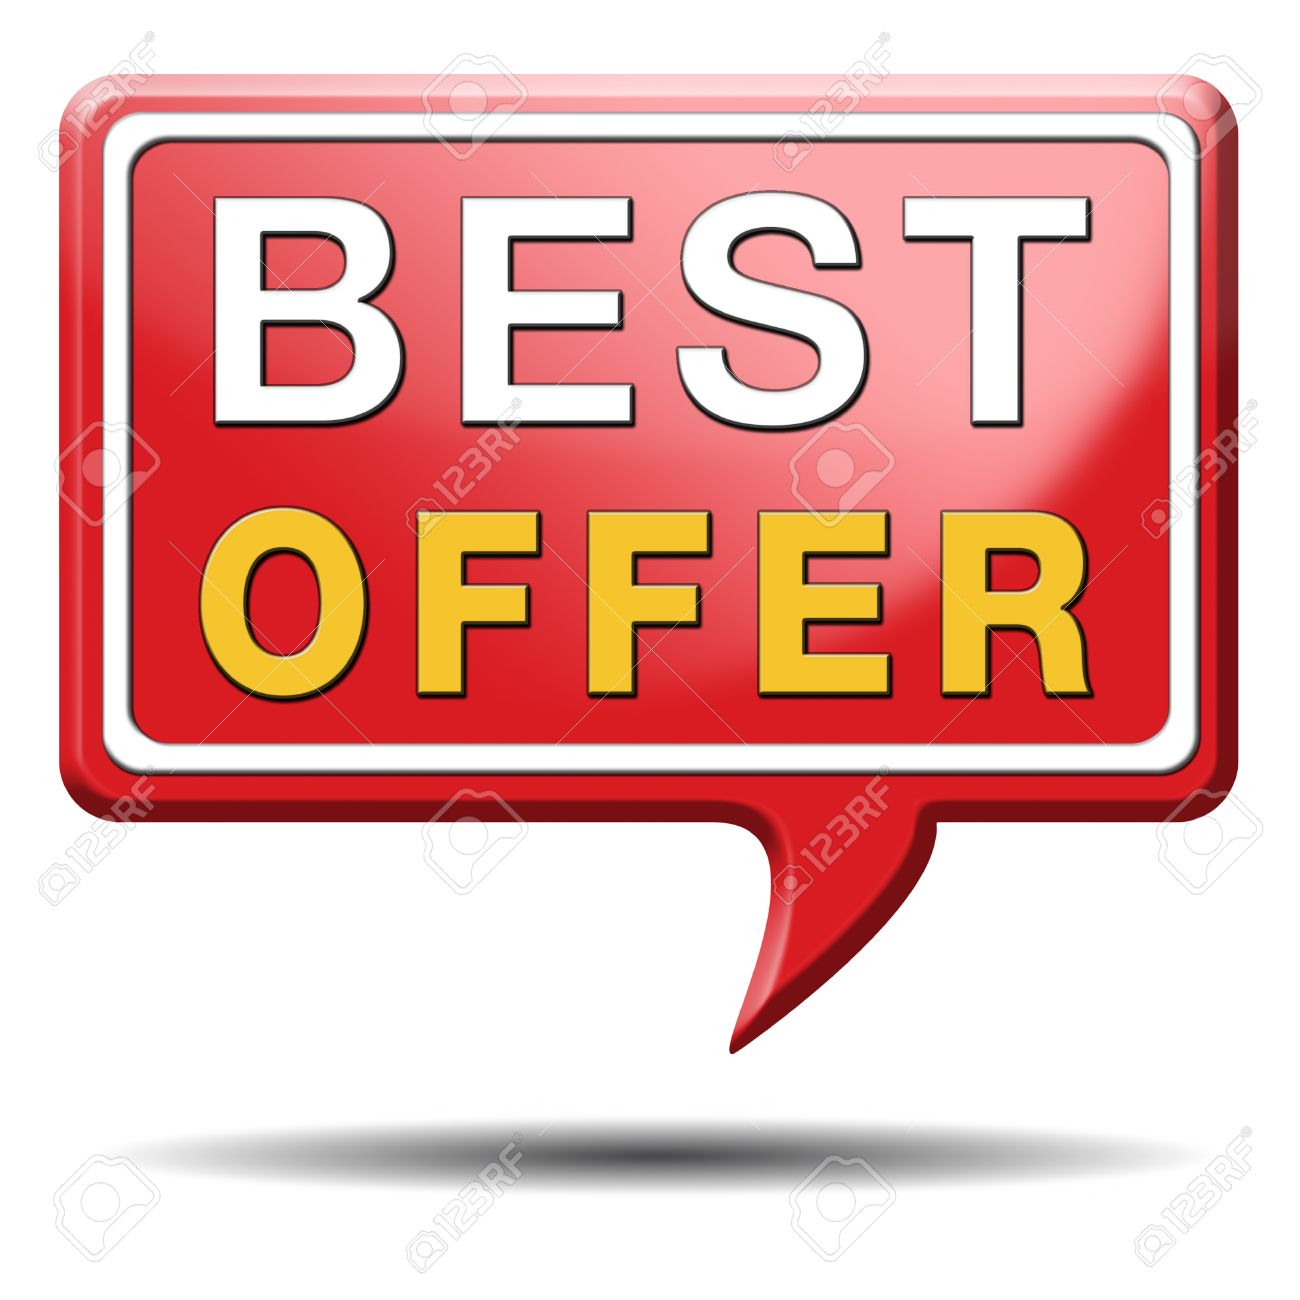 best offer lowest price and best value for the money web shop icon or online promotion